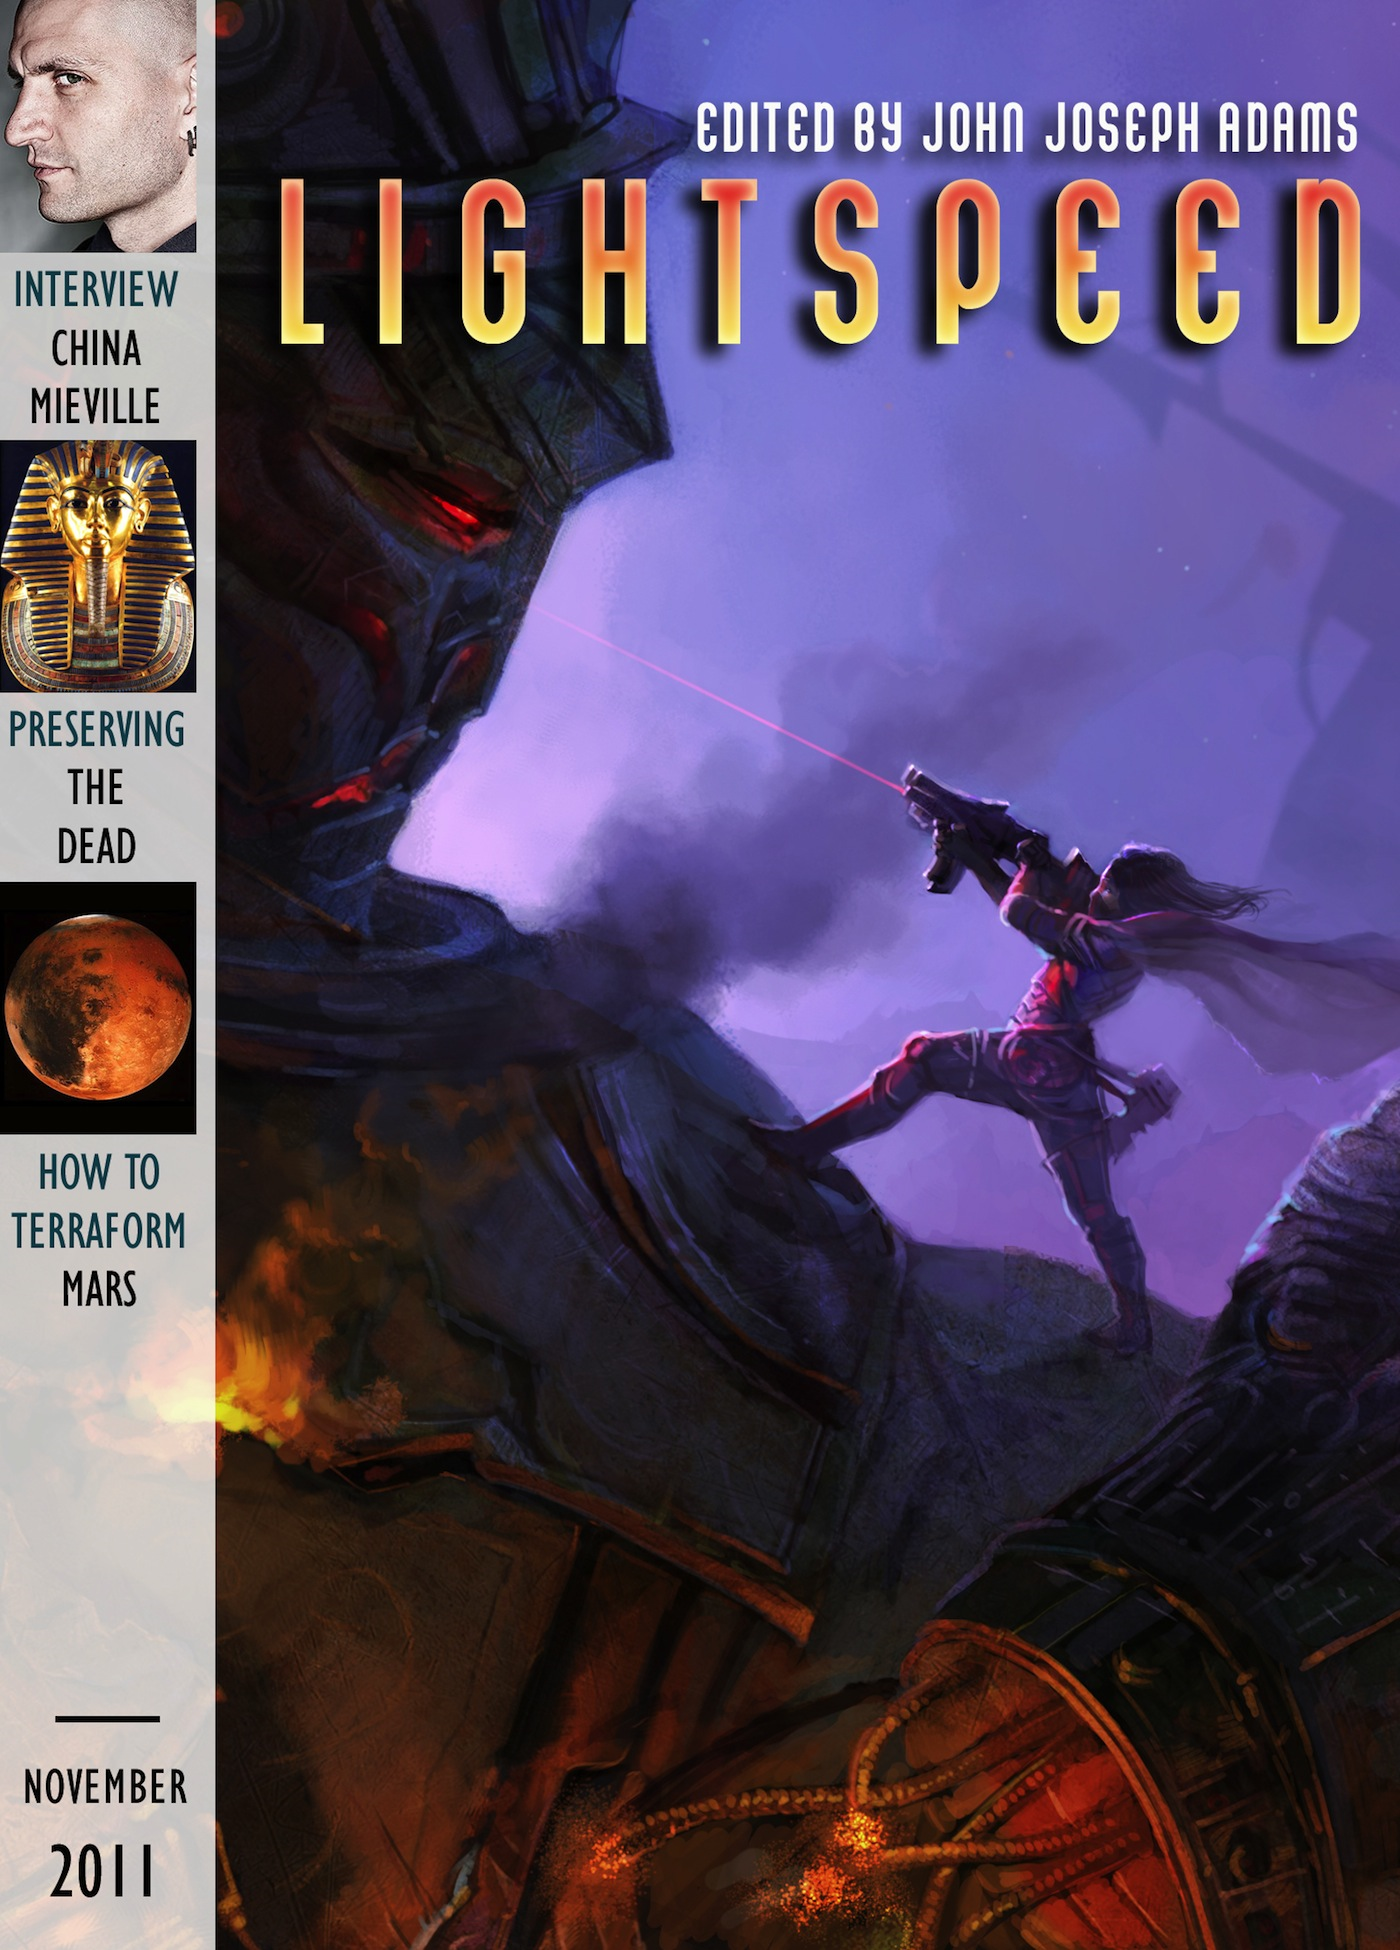 Lightspeed Magazine, November 2011